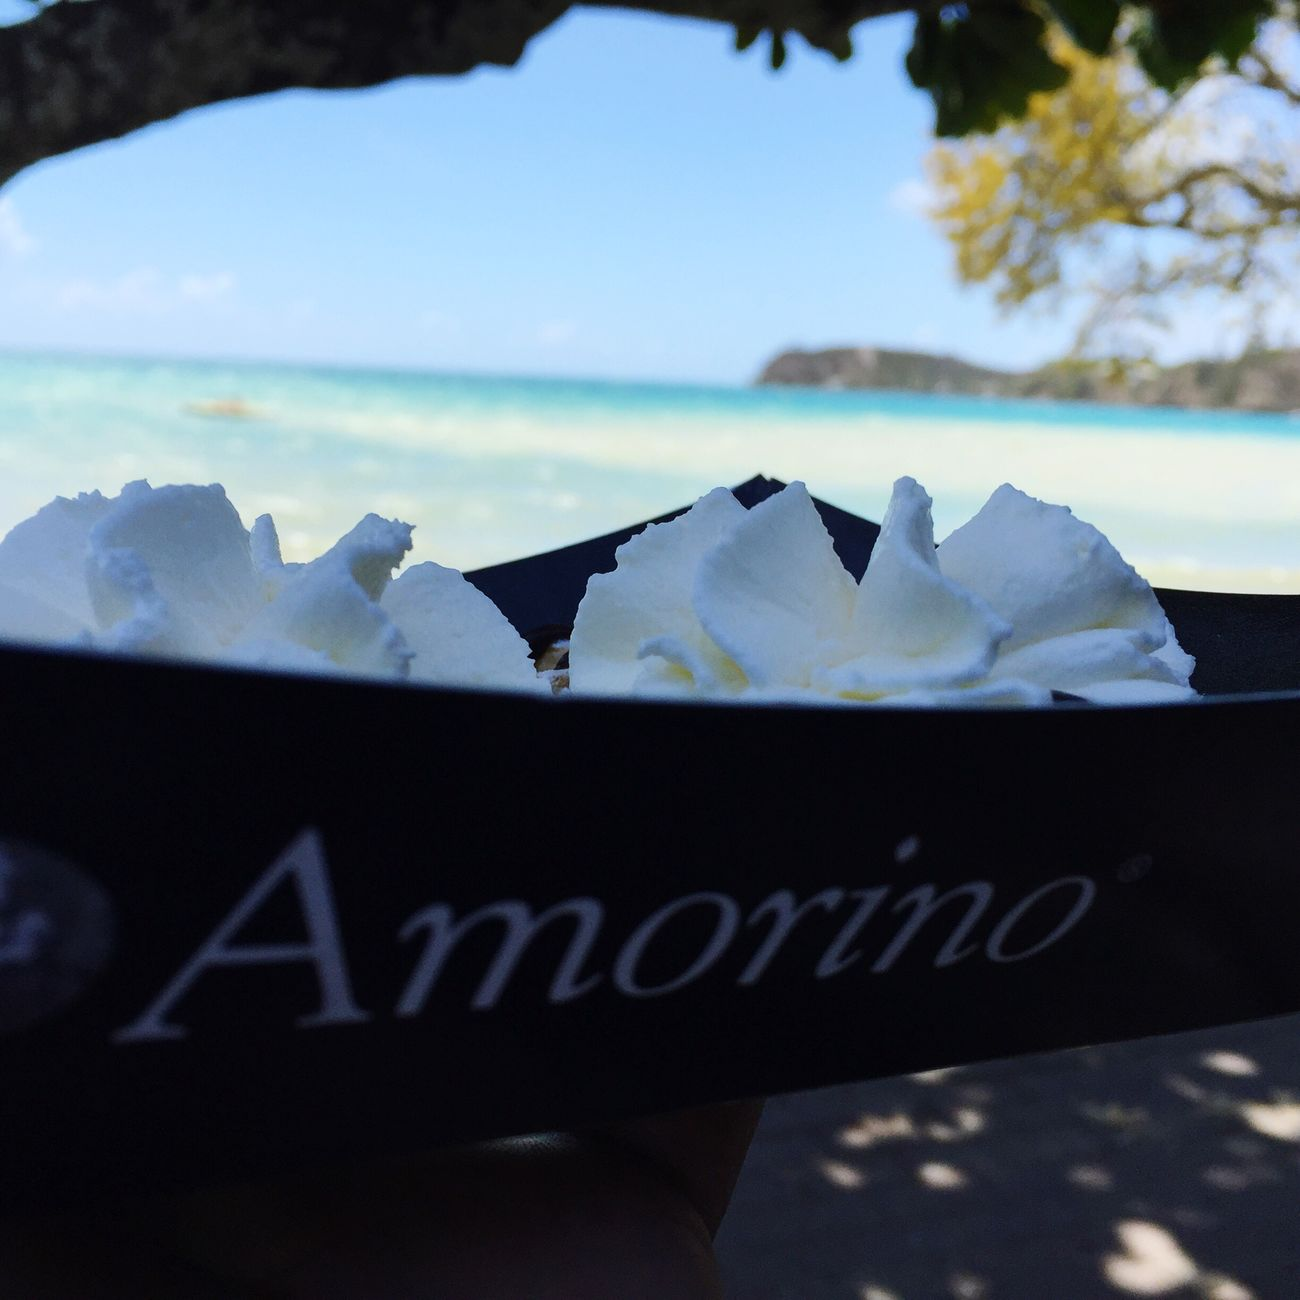 Amorino New Caledonia Holidays Beach 🍦☀️👌🏼